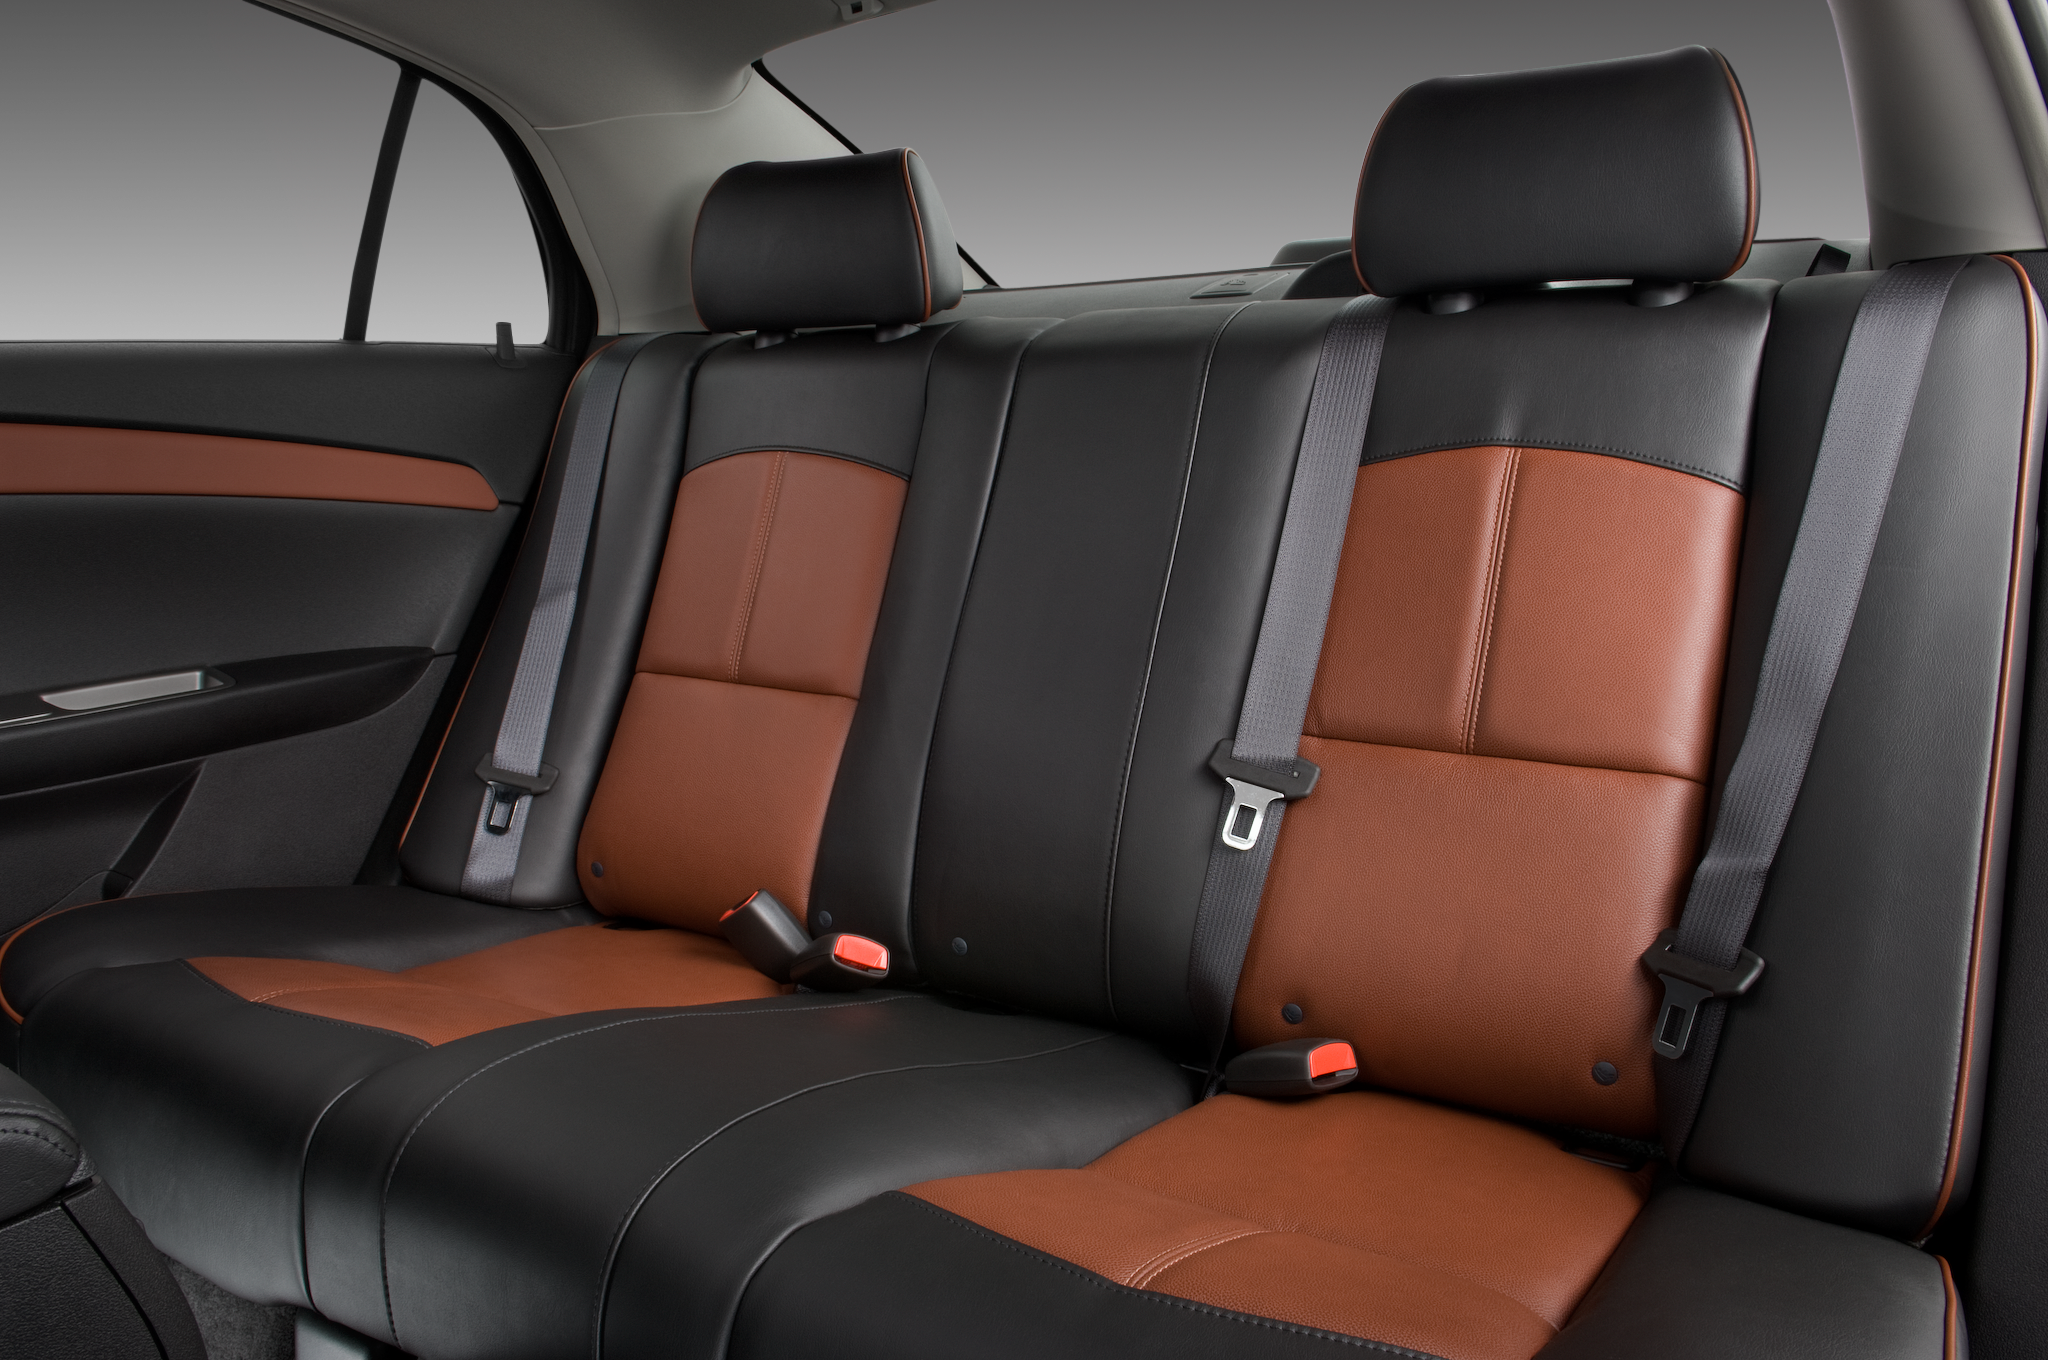 2006 chevy malibu seat covers velcromag. Black Bedroom Furniture Sets. Home Design Ideas